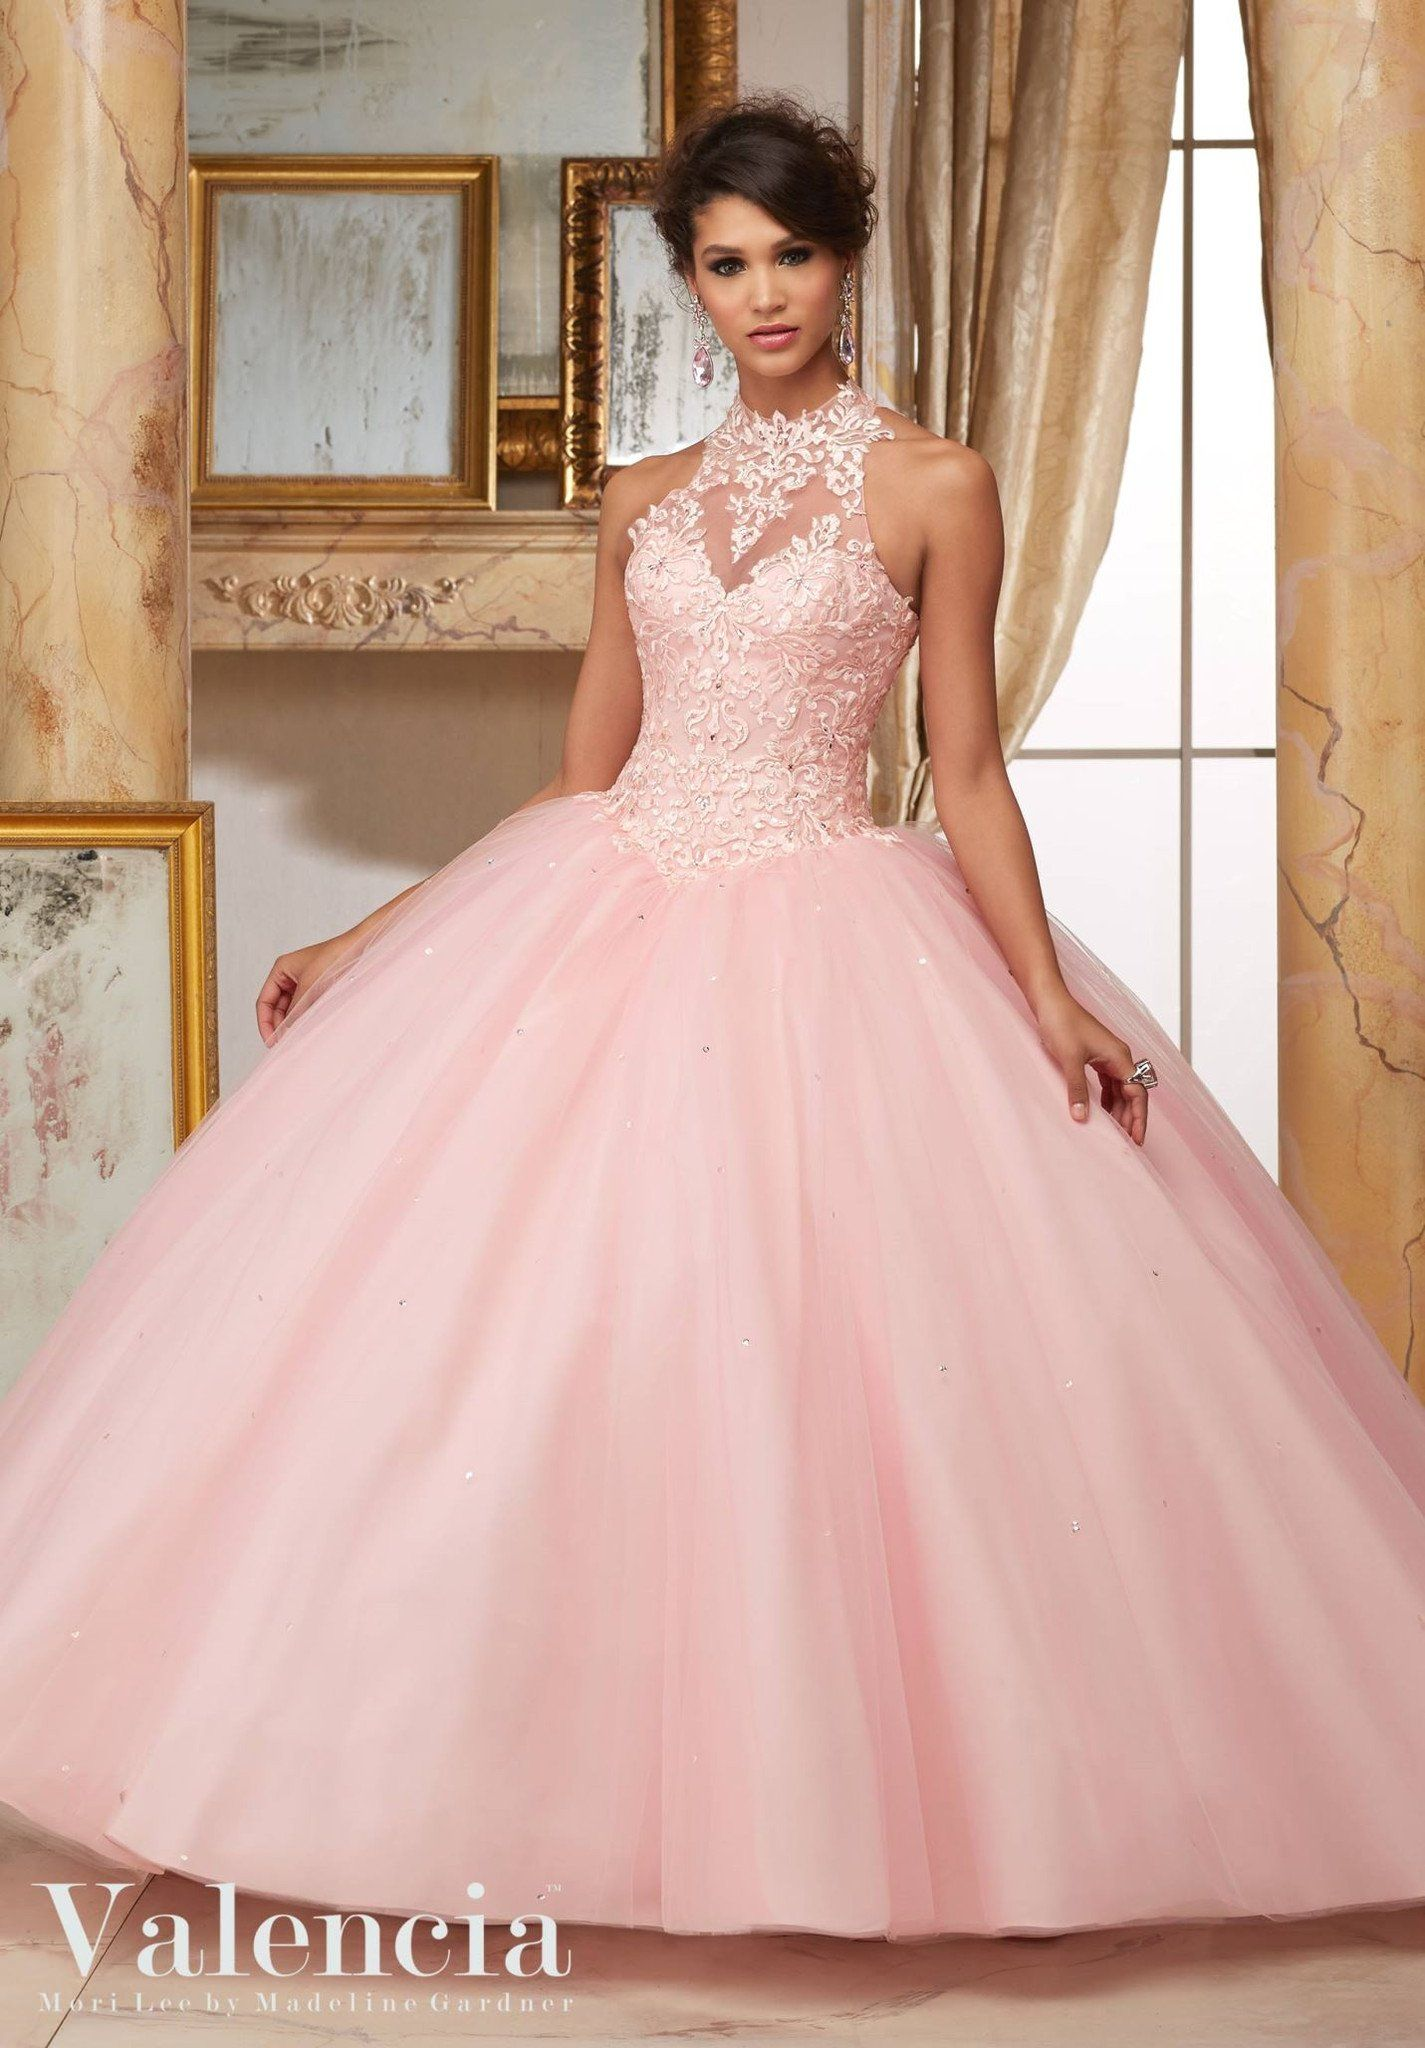 Mori Lee Valencia Quinceanera Dress 60004 | Pinterest | 15 vestidos ...